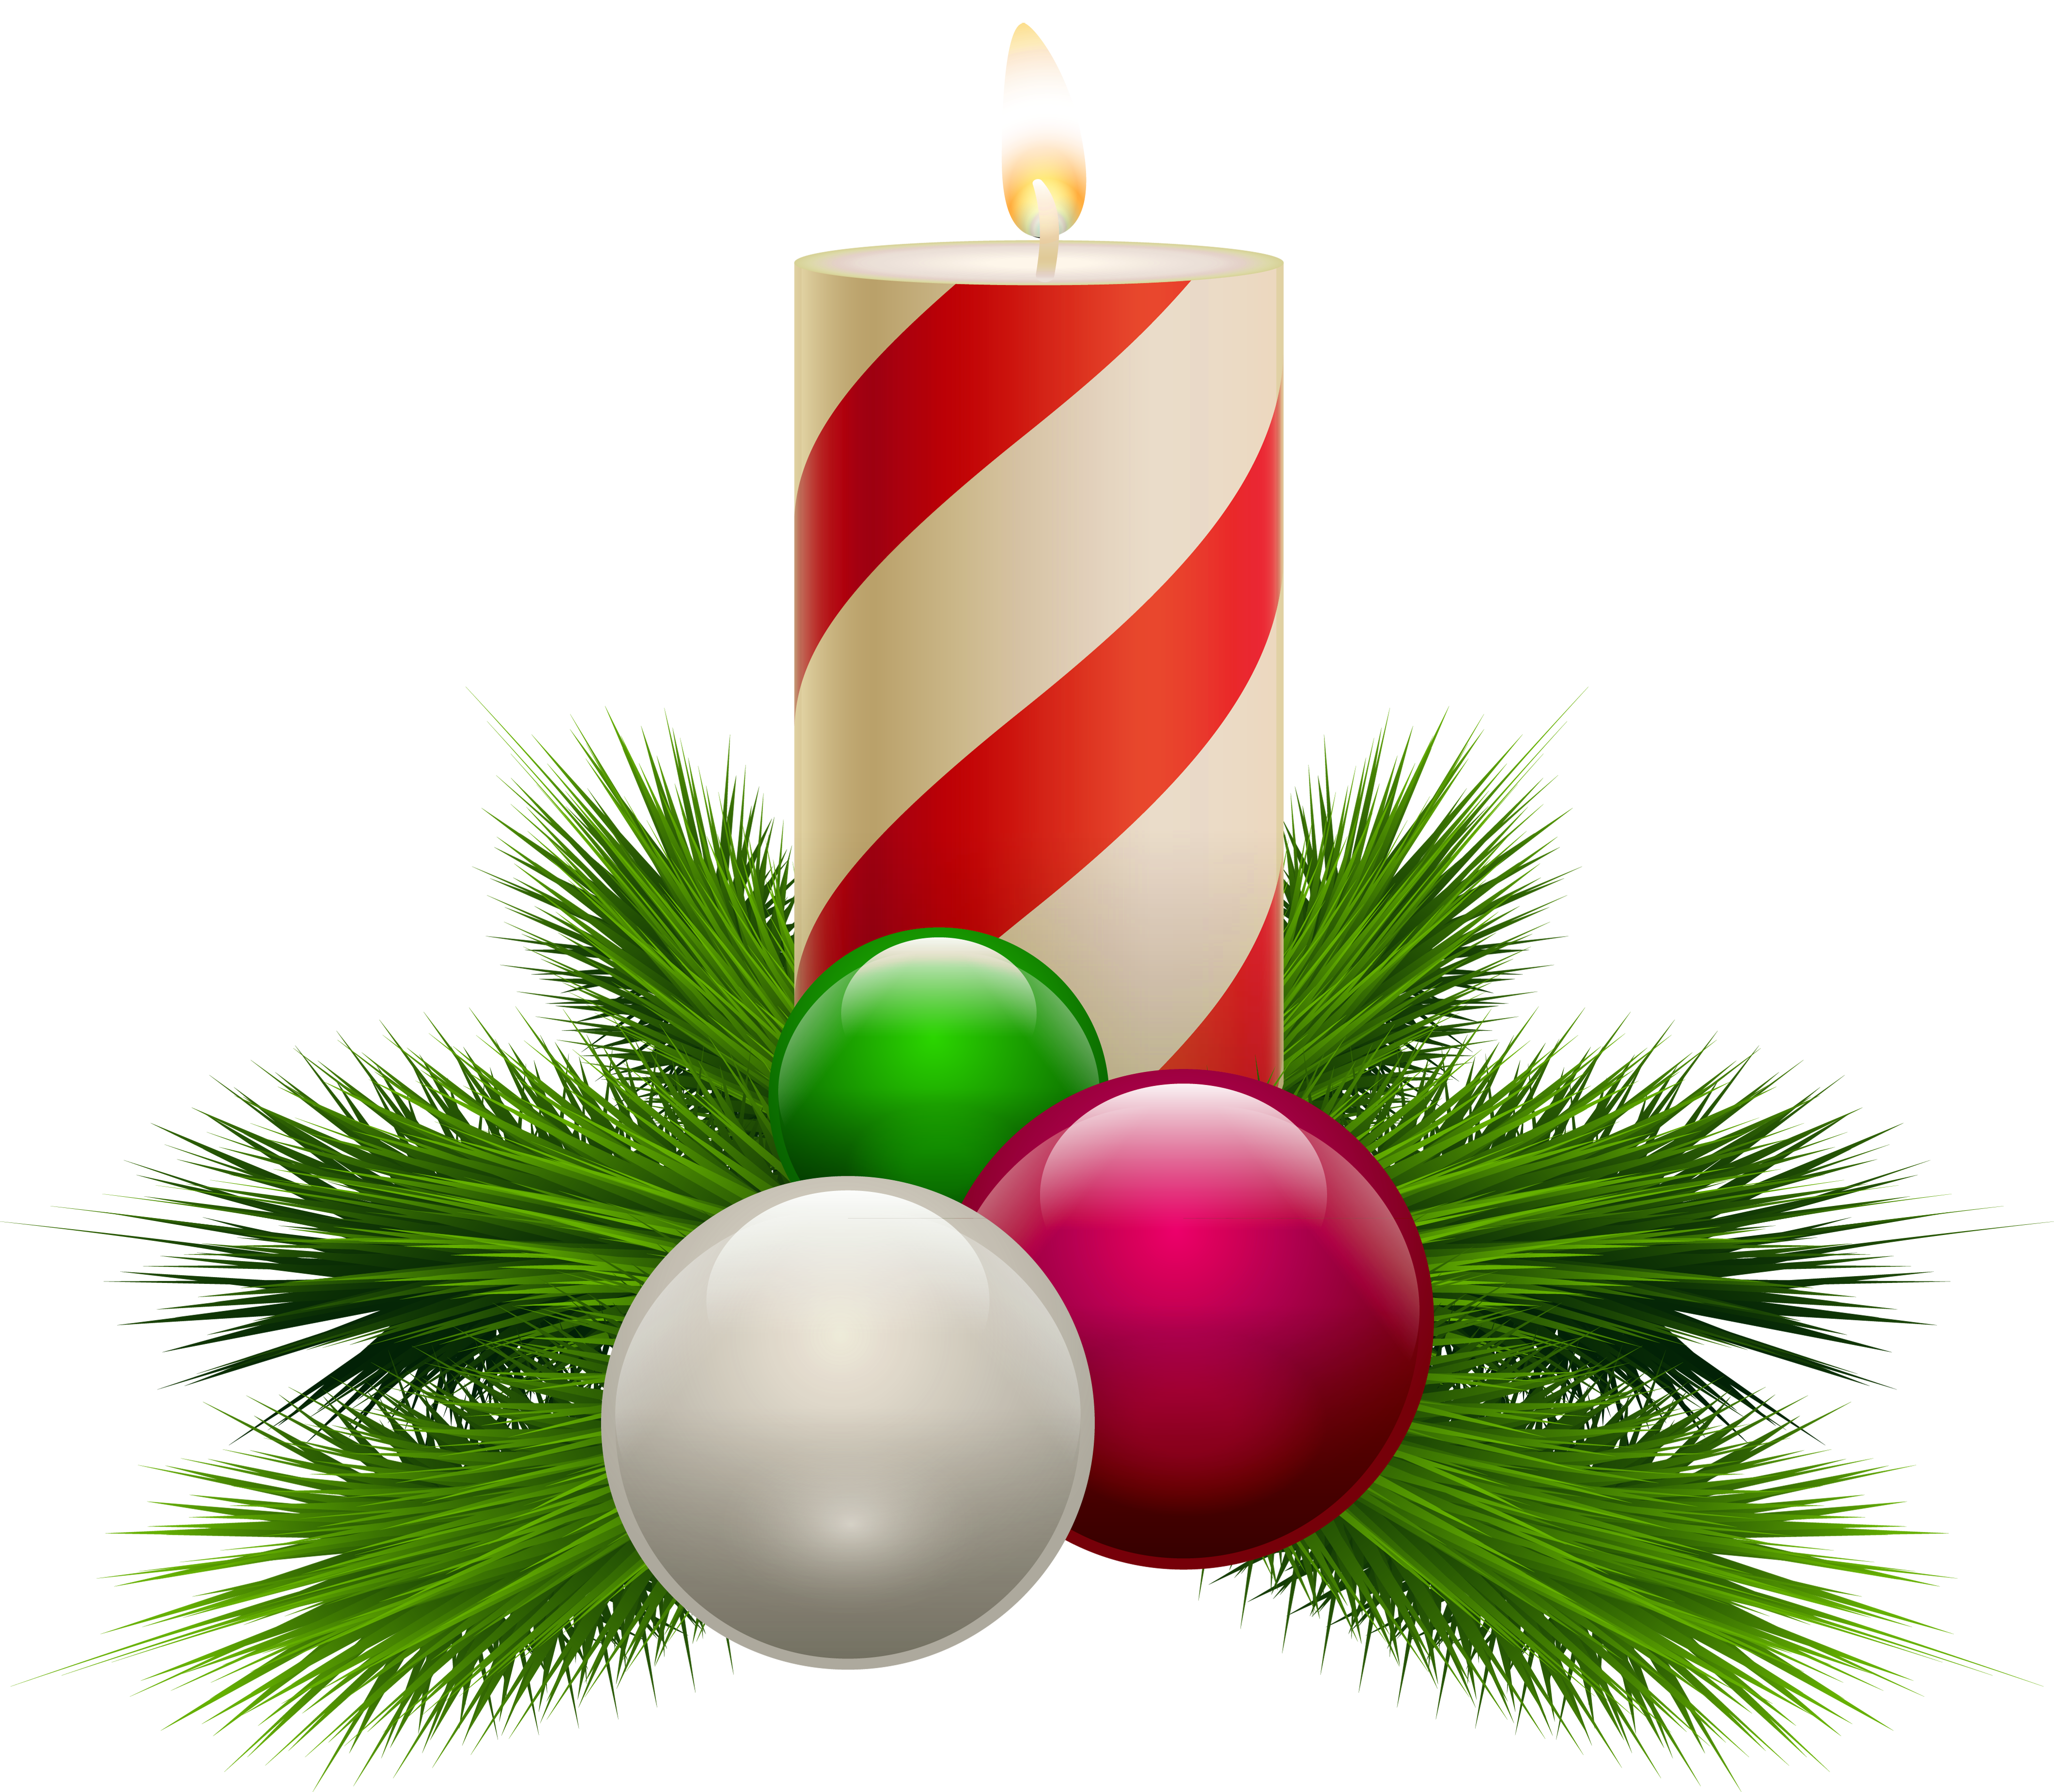 Christmas ornaments clear background images png candles. Transparent white candle clipart